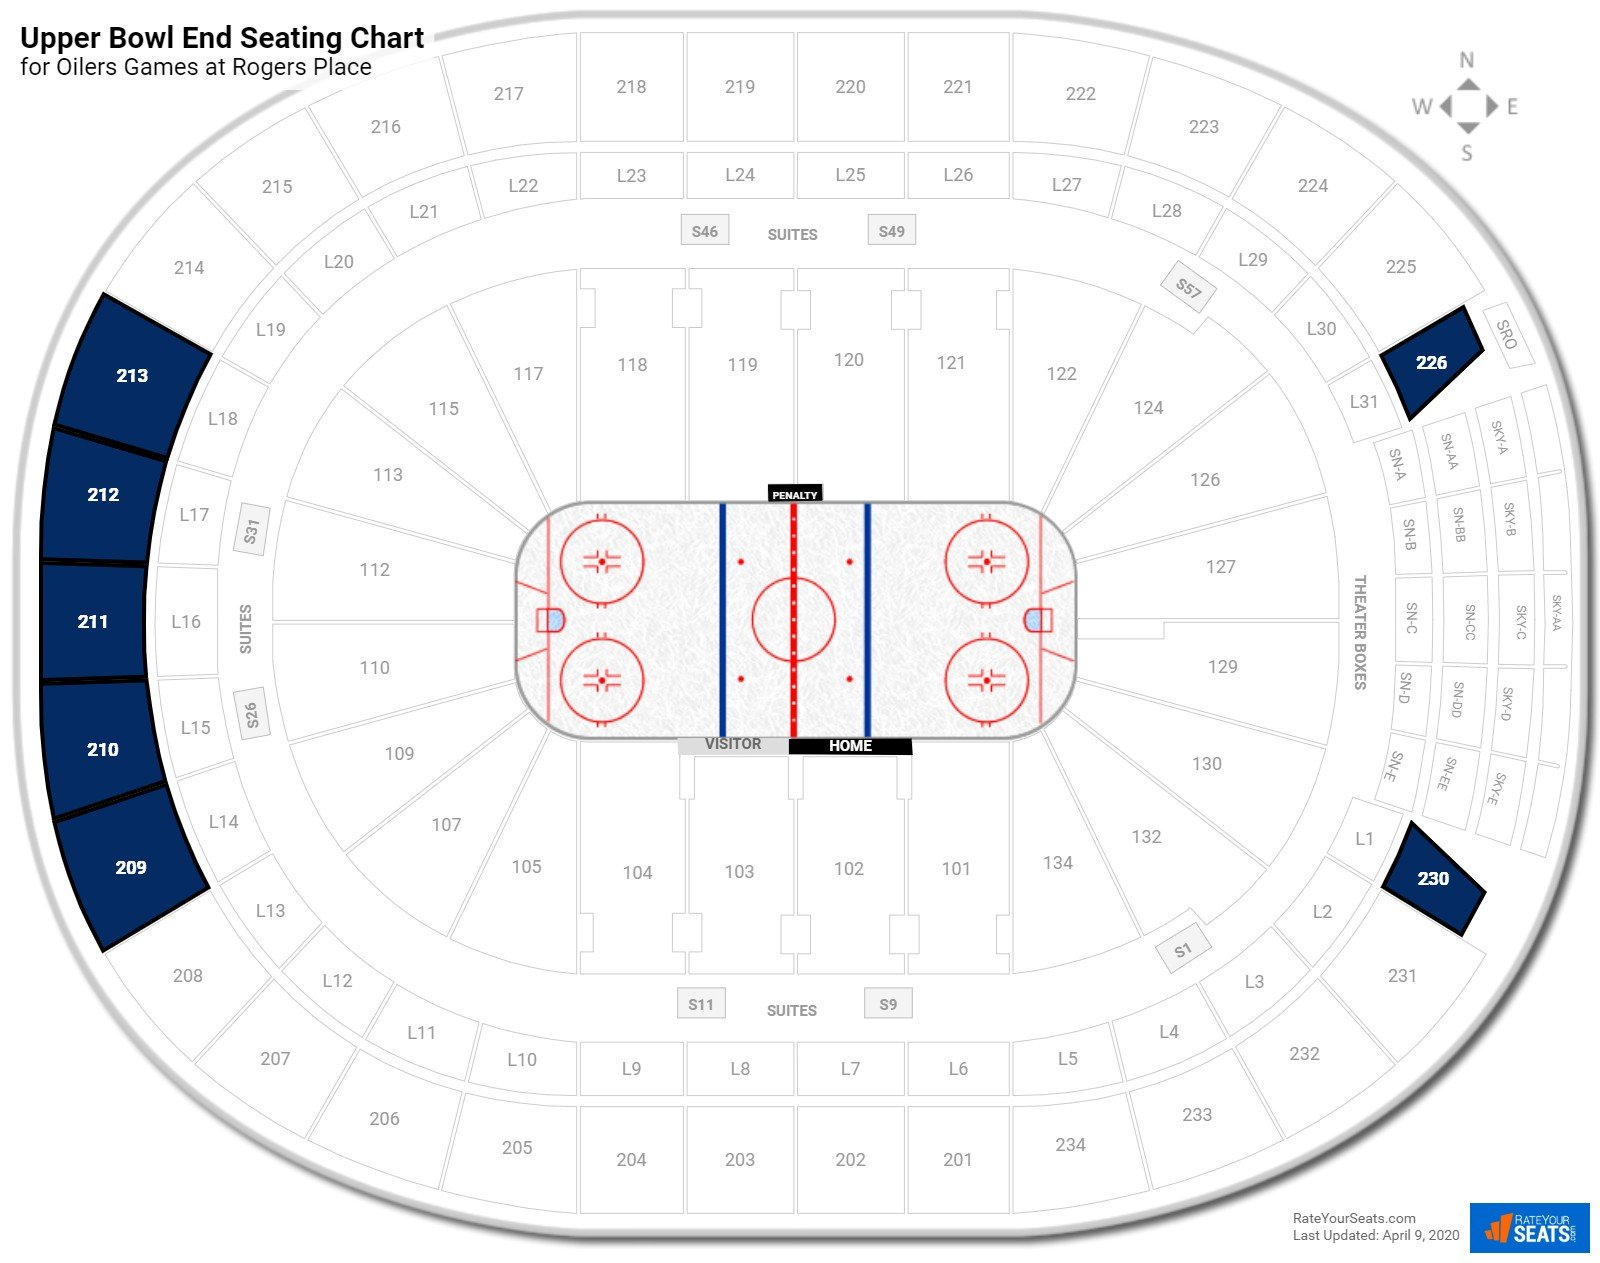 Rogers Place Upper End seating chart